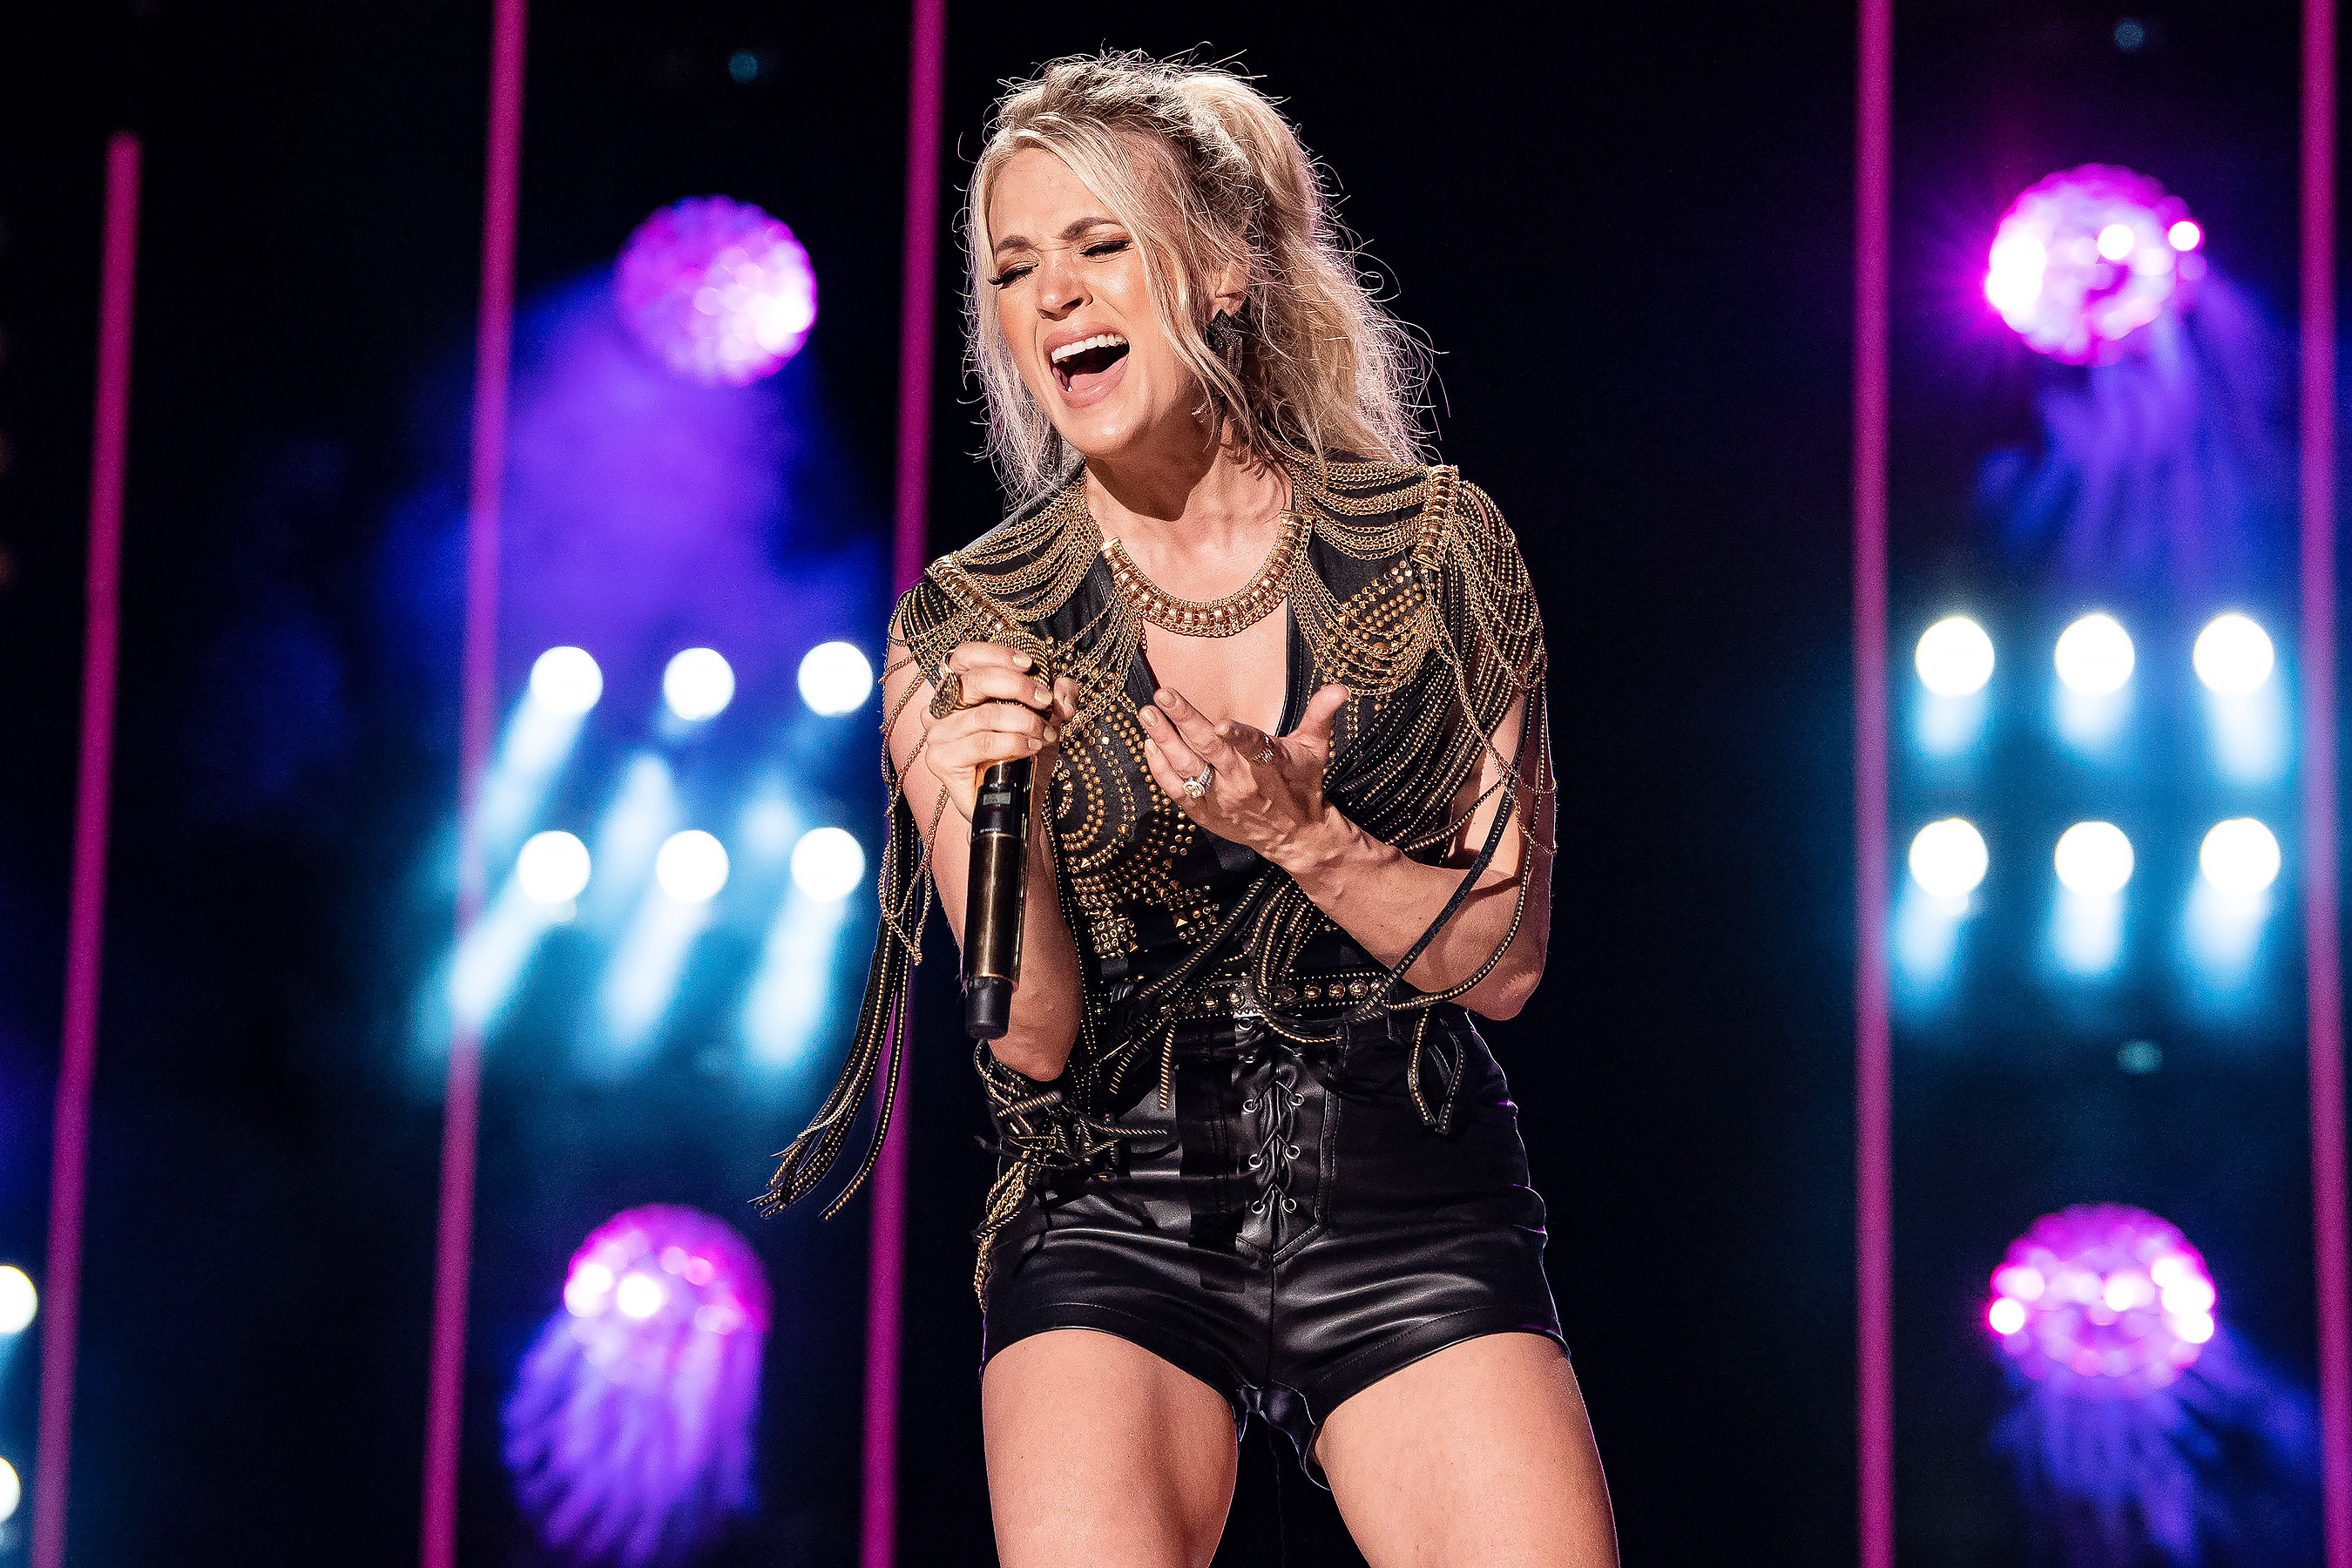 NASHVILLE, TENNESSEE - JUNE 07: -Carrie Underwood performs on stage during day 2 of 2019 CMA Music Festival on June 07, 2019 in Nashville, Tennessee.